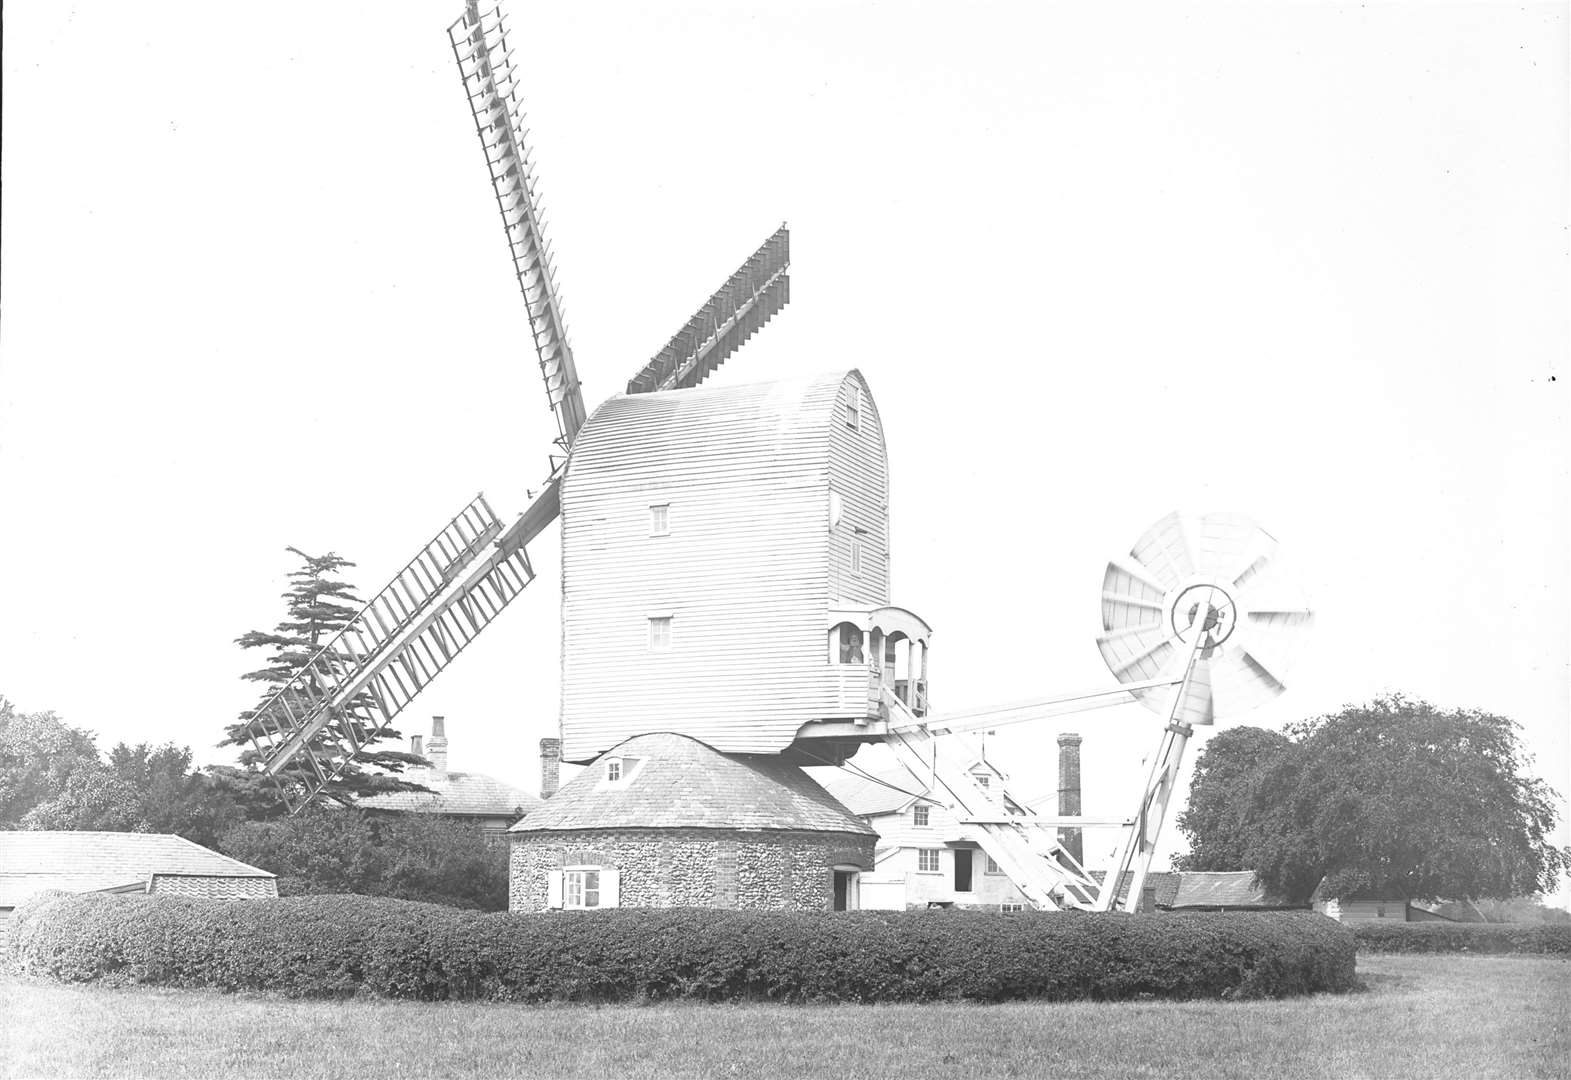 NOSTALGIA: Windmill at Barton Mills